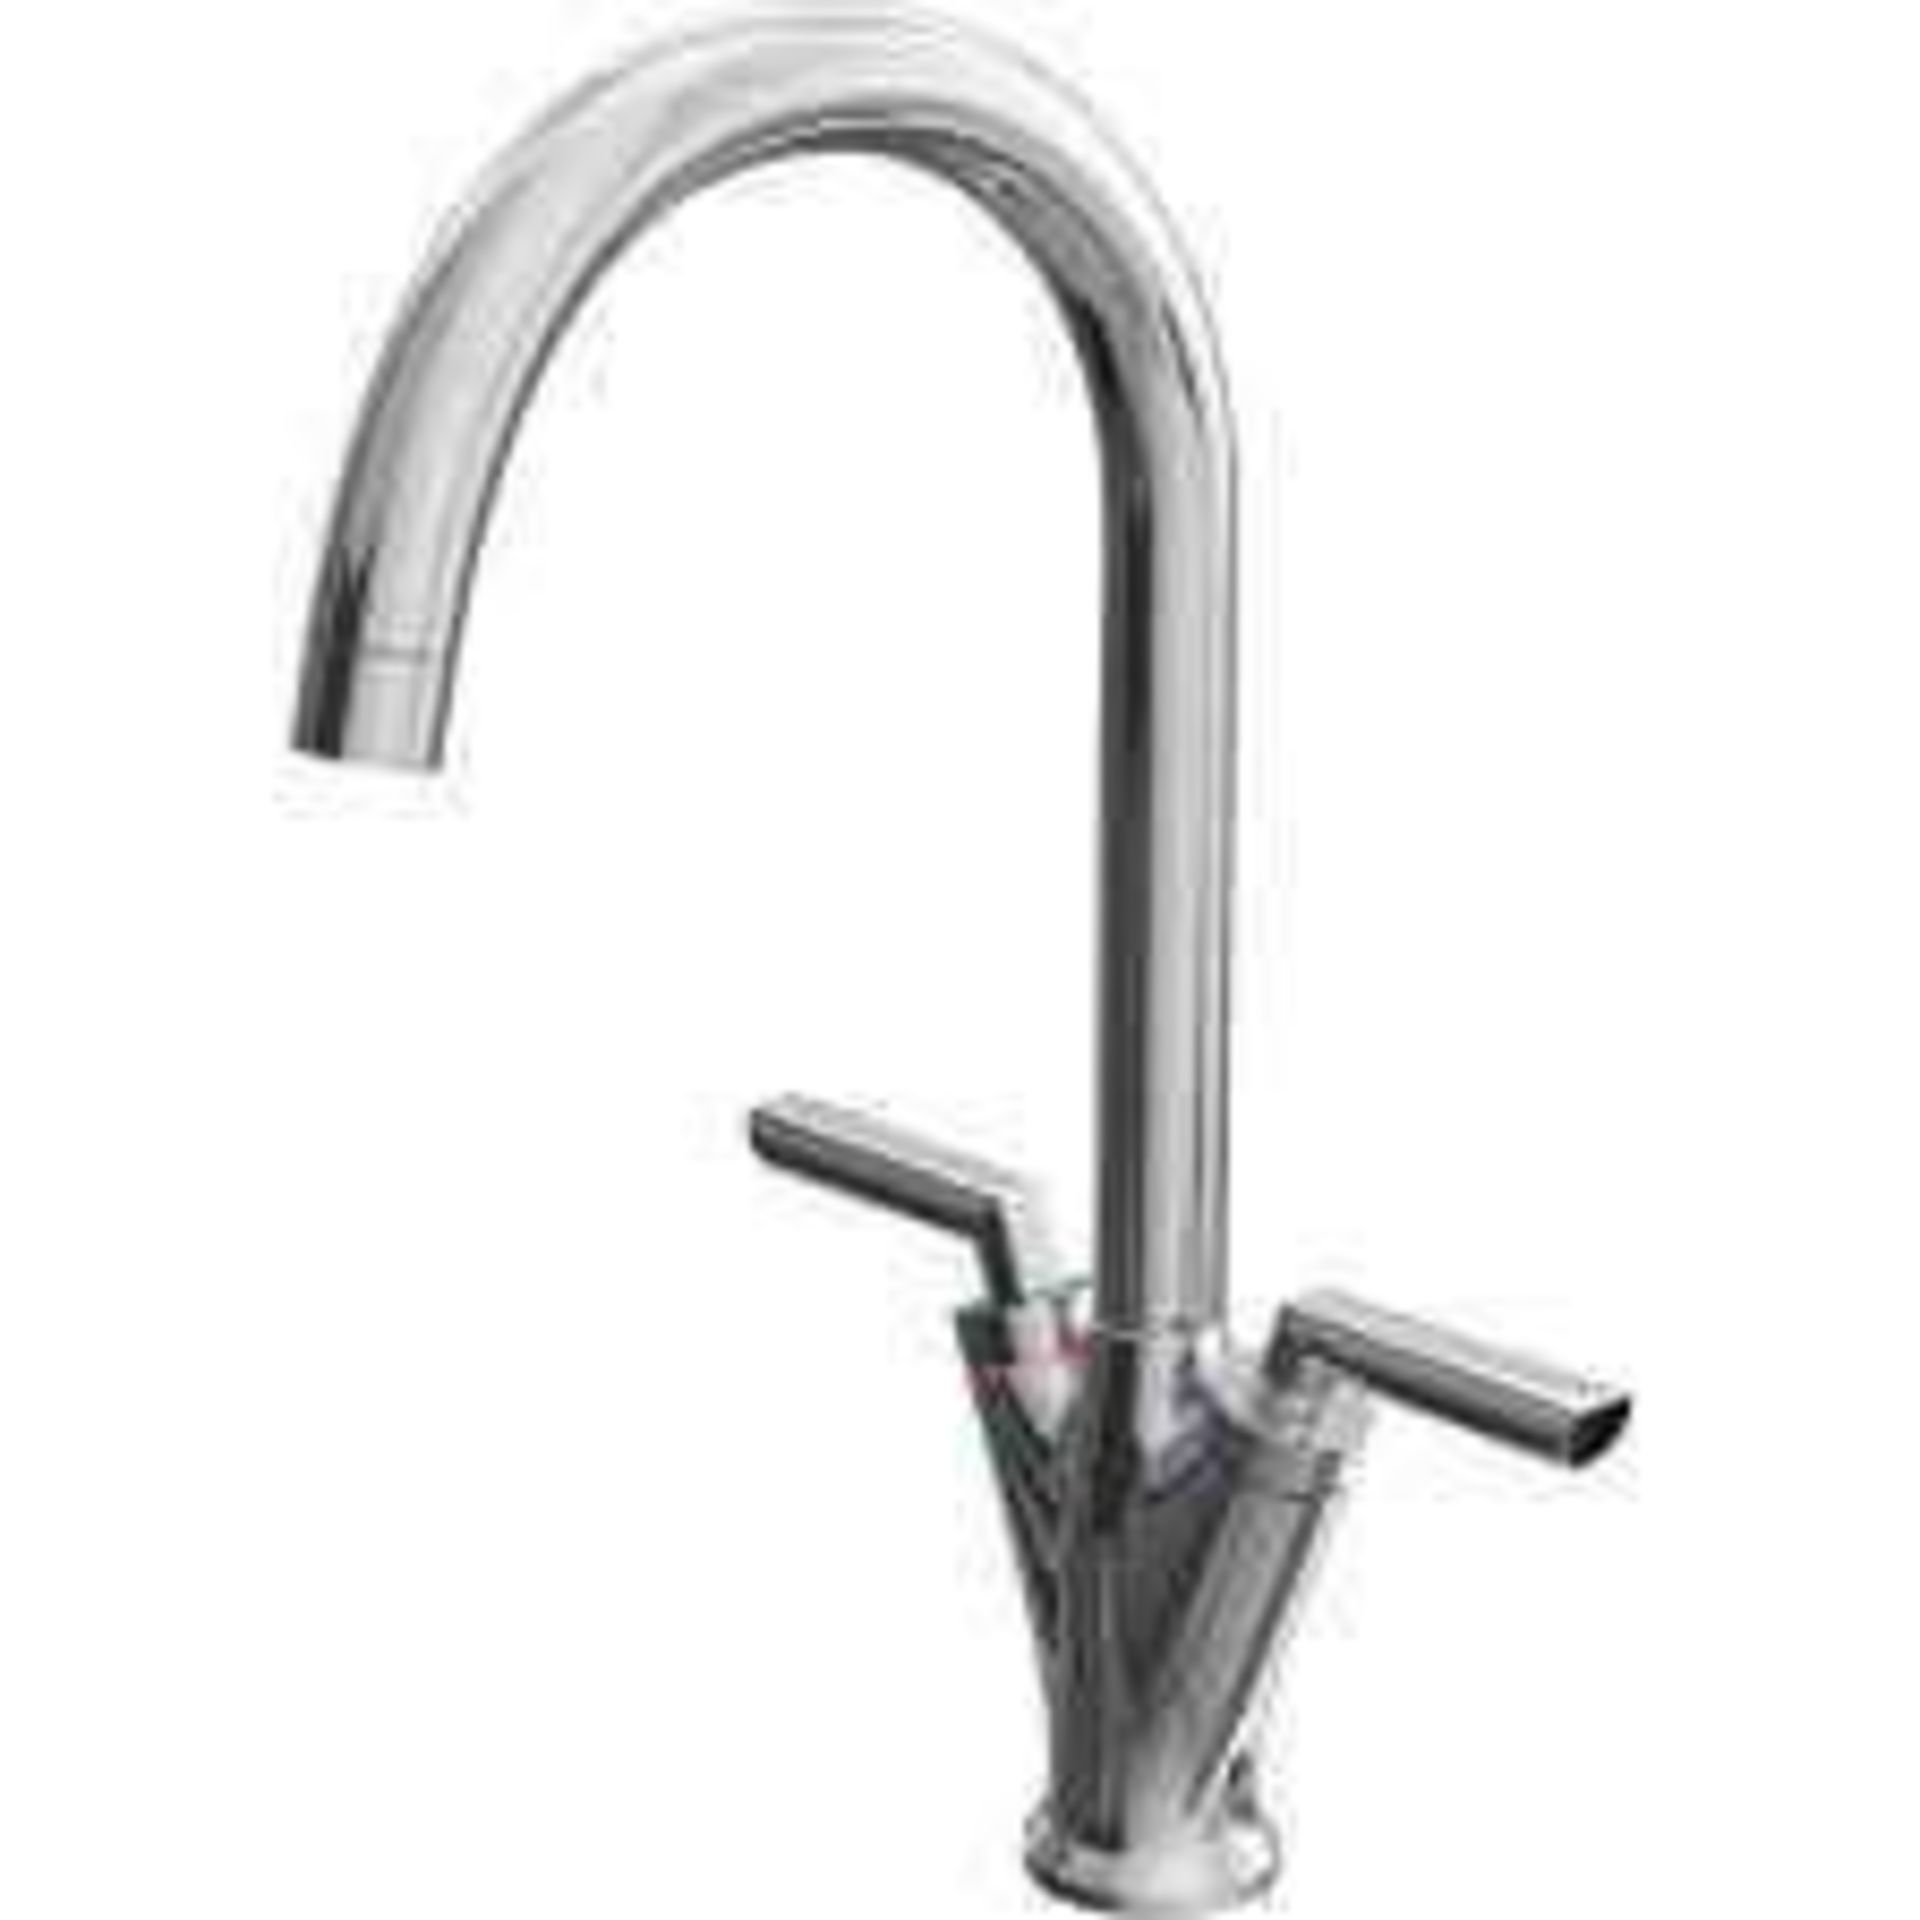 Combined RRP £170 Lot To Contain 3 Boxed Assorted Cooke & Lewis Stainless Steel Lever Taps - Image 3 of 3